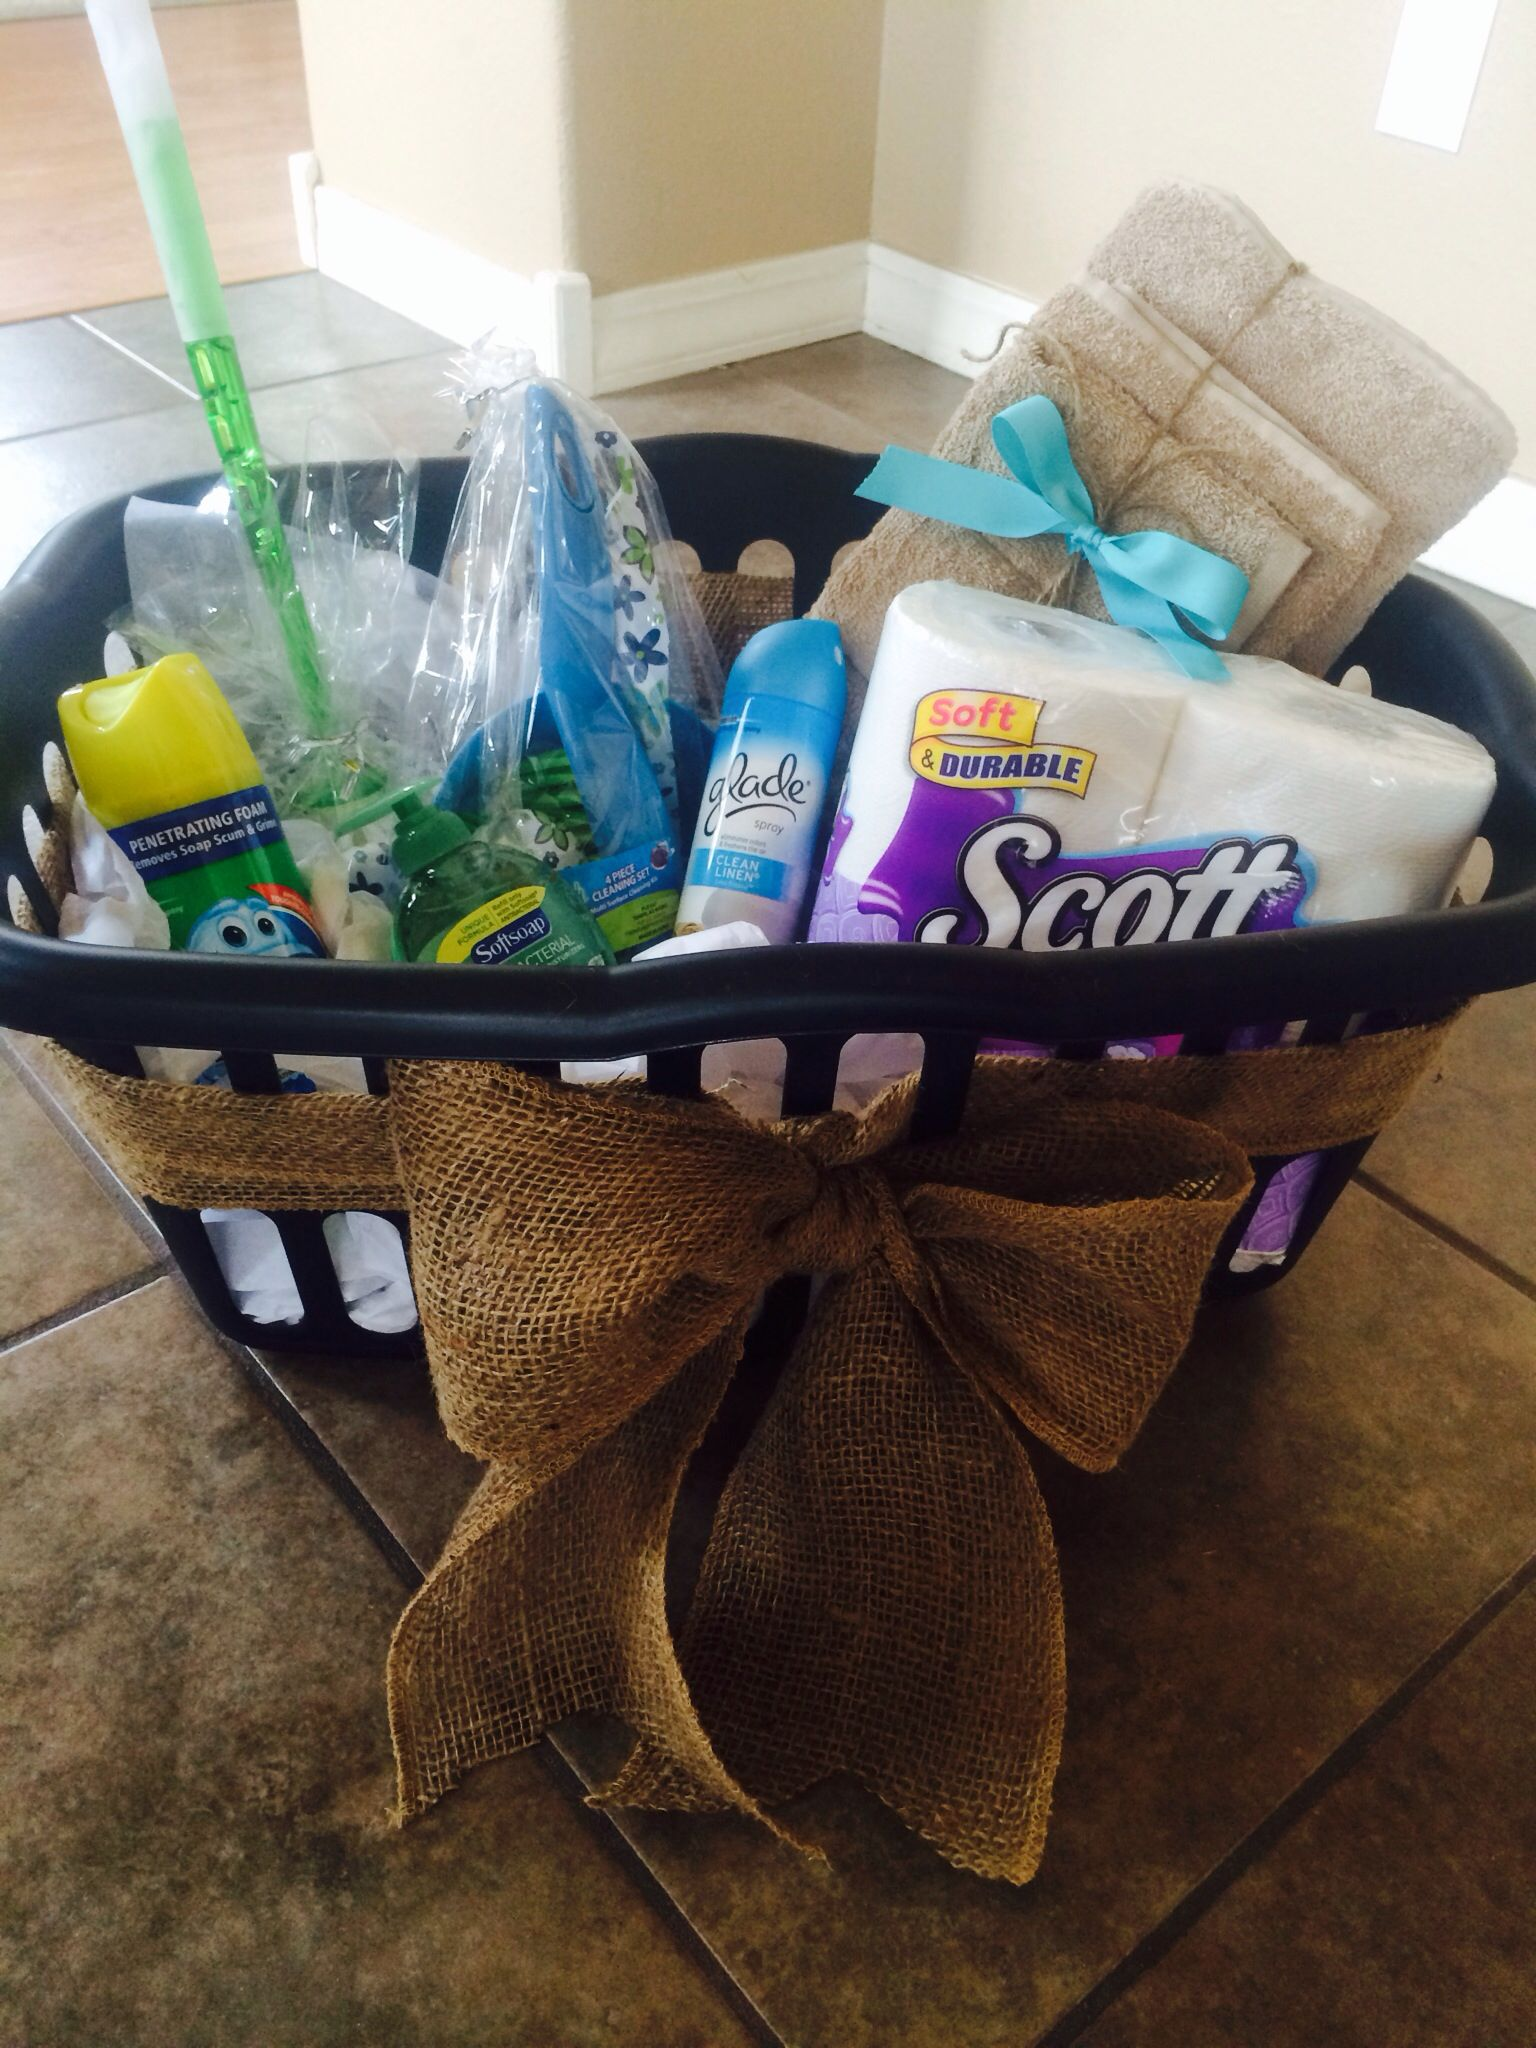 High School Graduation Gift Basket Bathroom Themed But Could Do Kitch High School Graduation Gift Basket Graduation Gift Basket High School Graduation Gifts